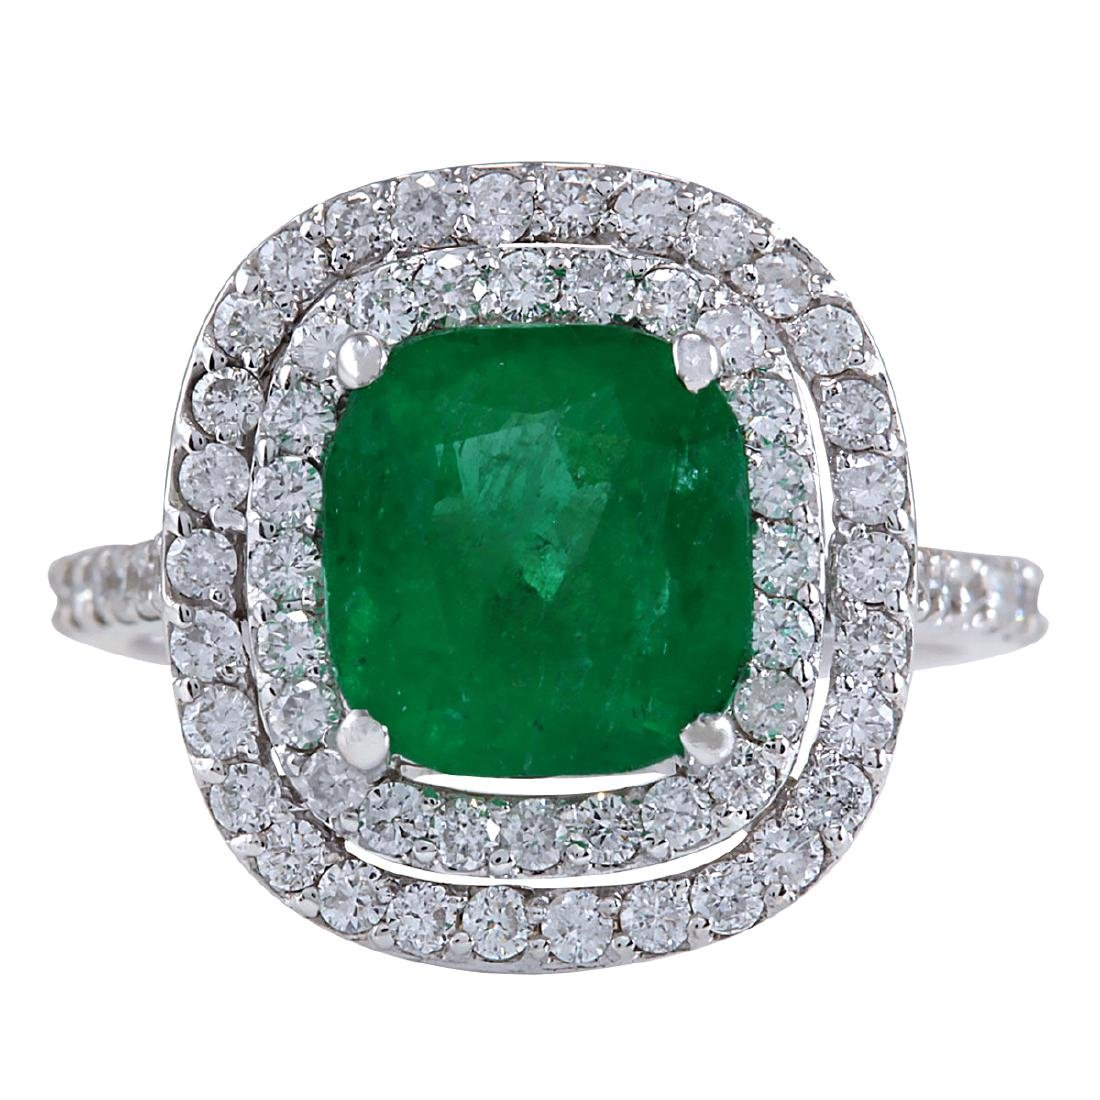 3.74CTW Natural Emerald And Diamond Ring In 14K White